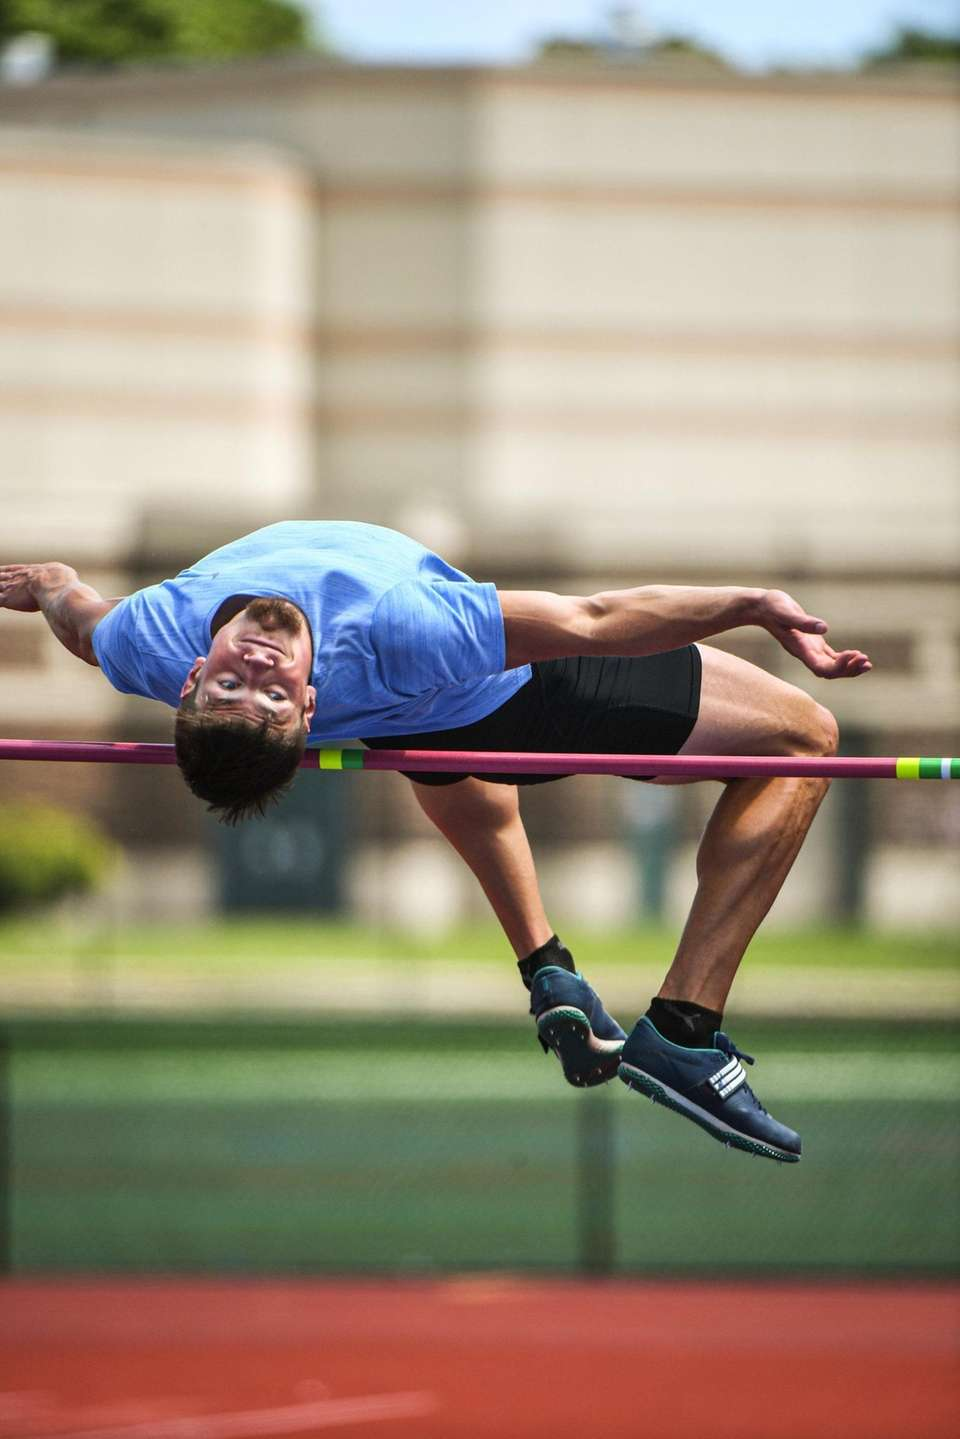 Jack Flood practices the high jump while training